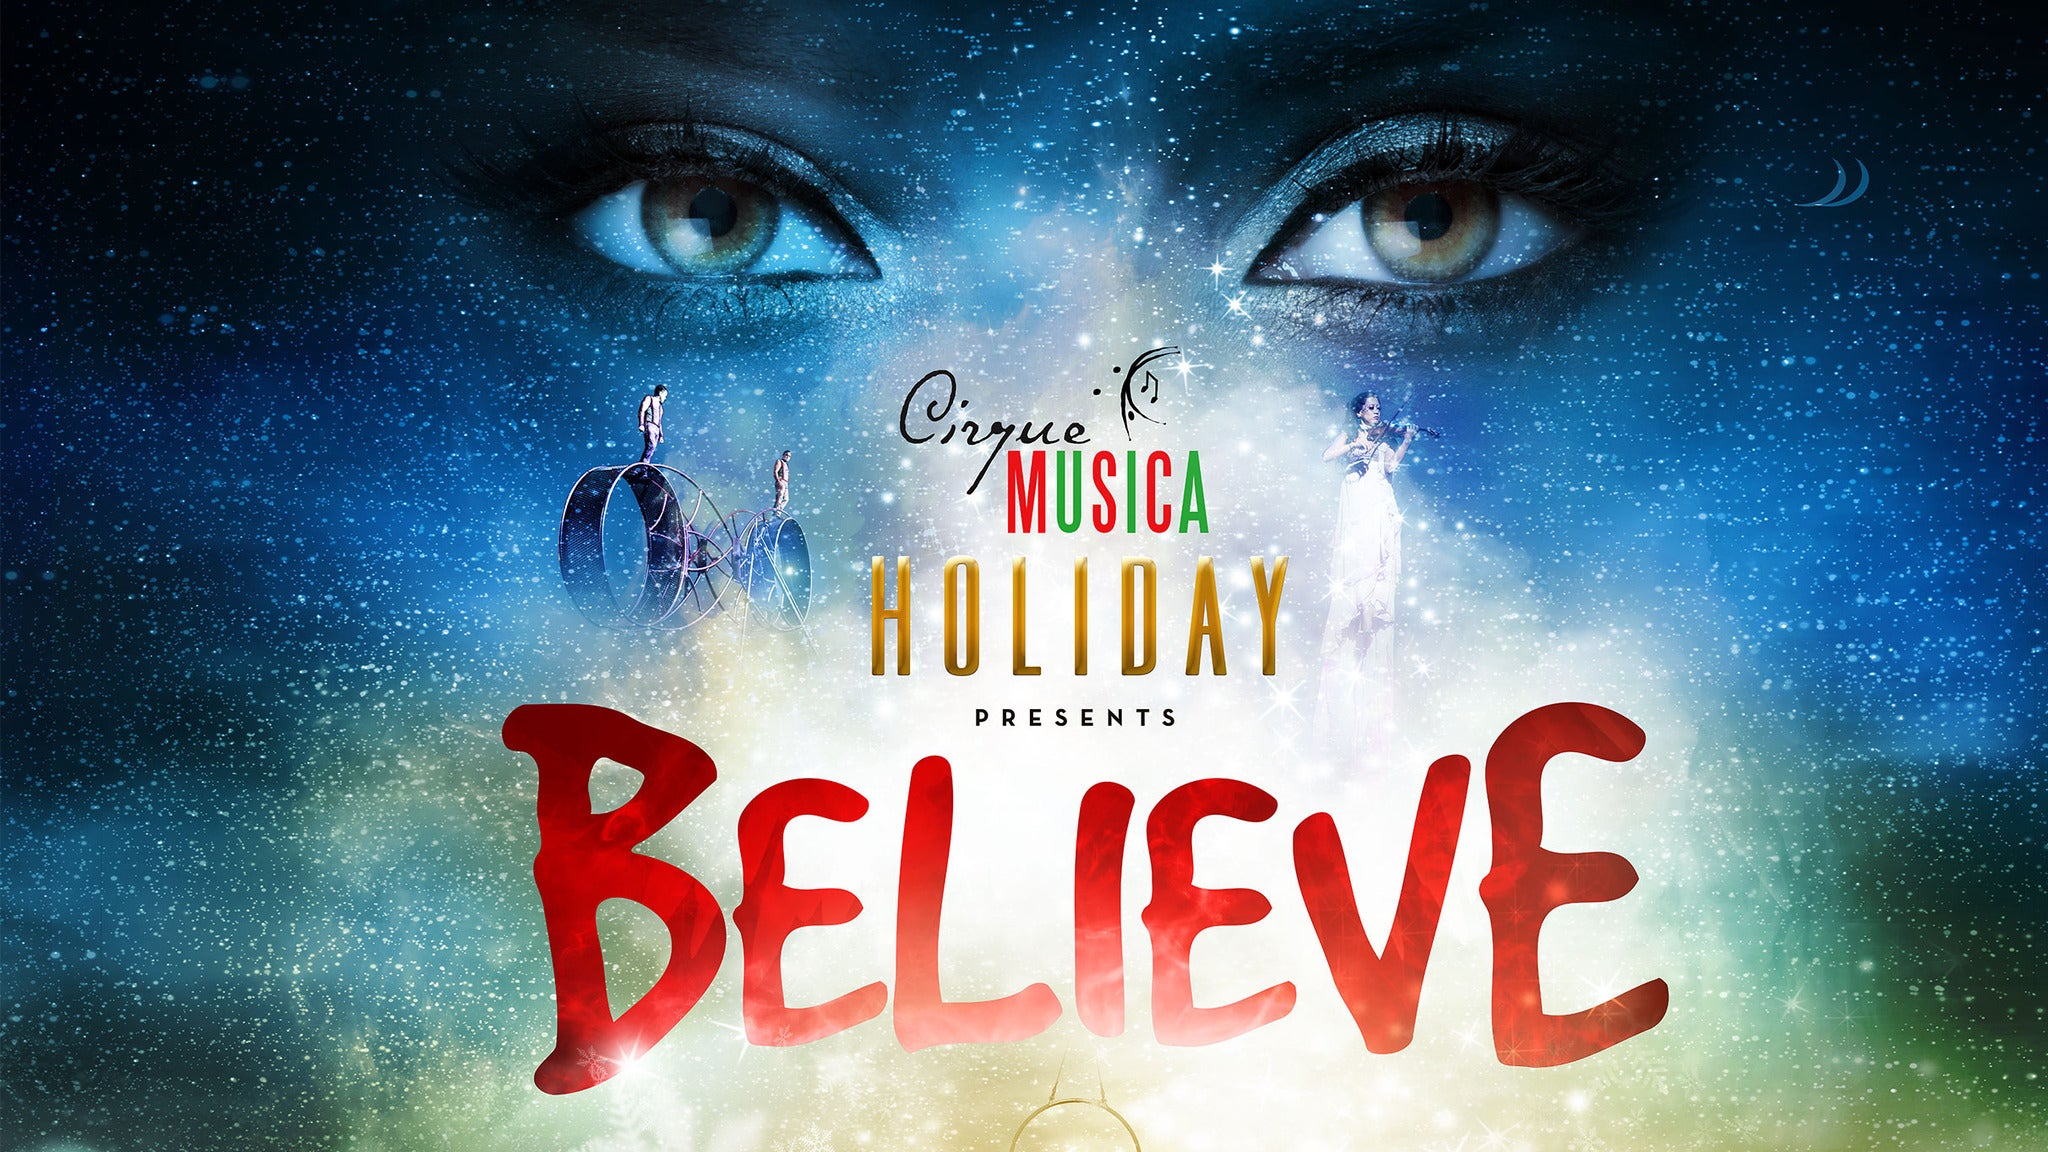 Cirque Musica Holiday presents BELIEVE - Bridgeport, CT 06604